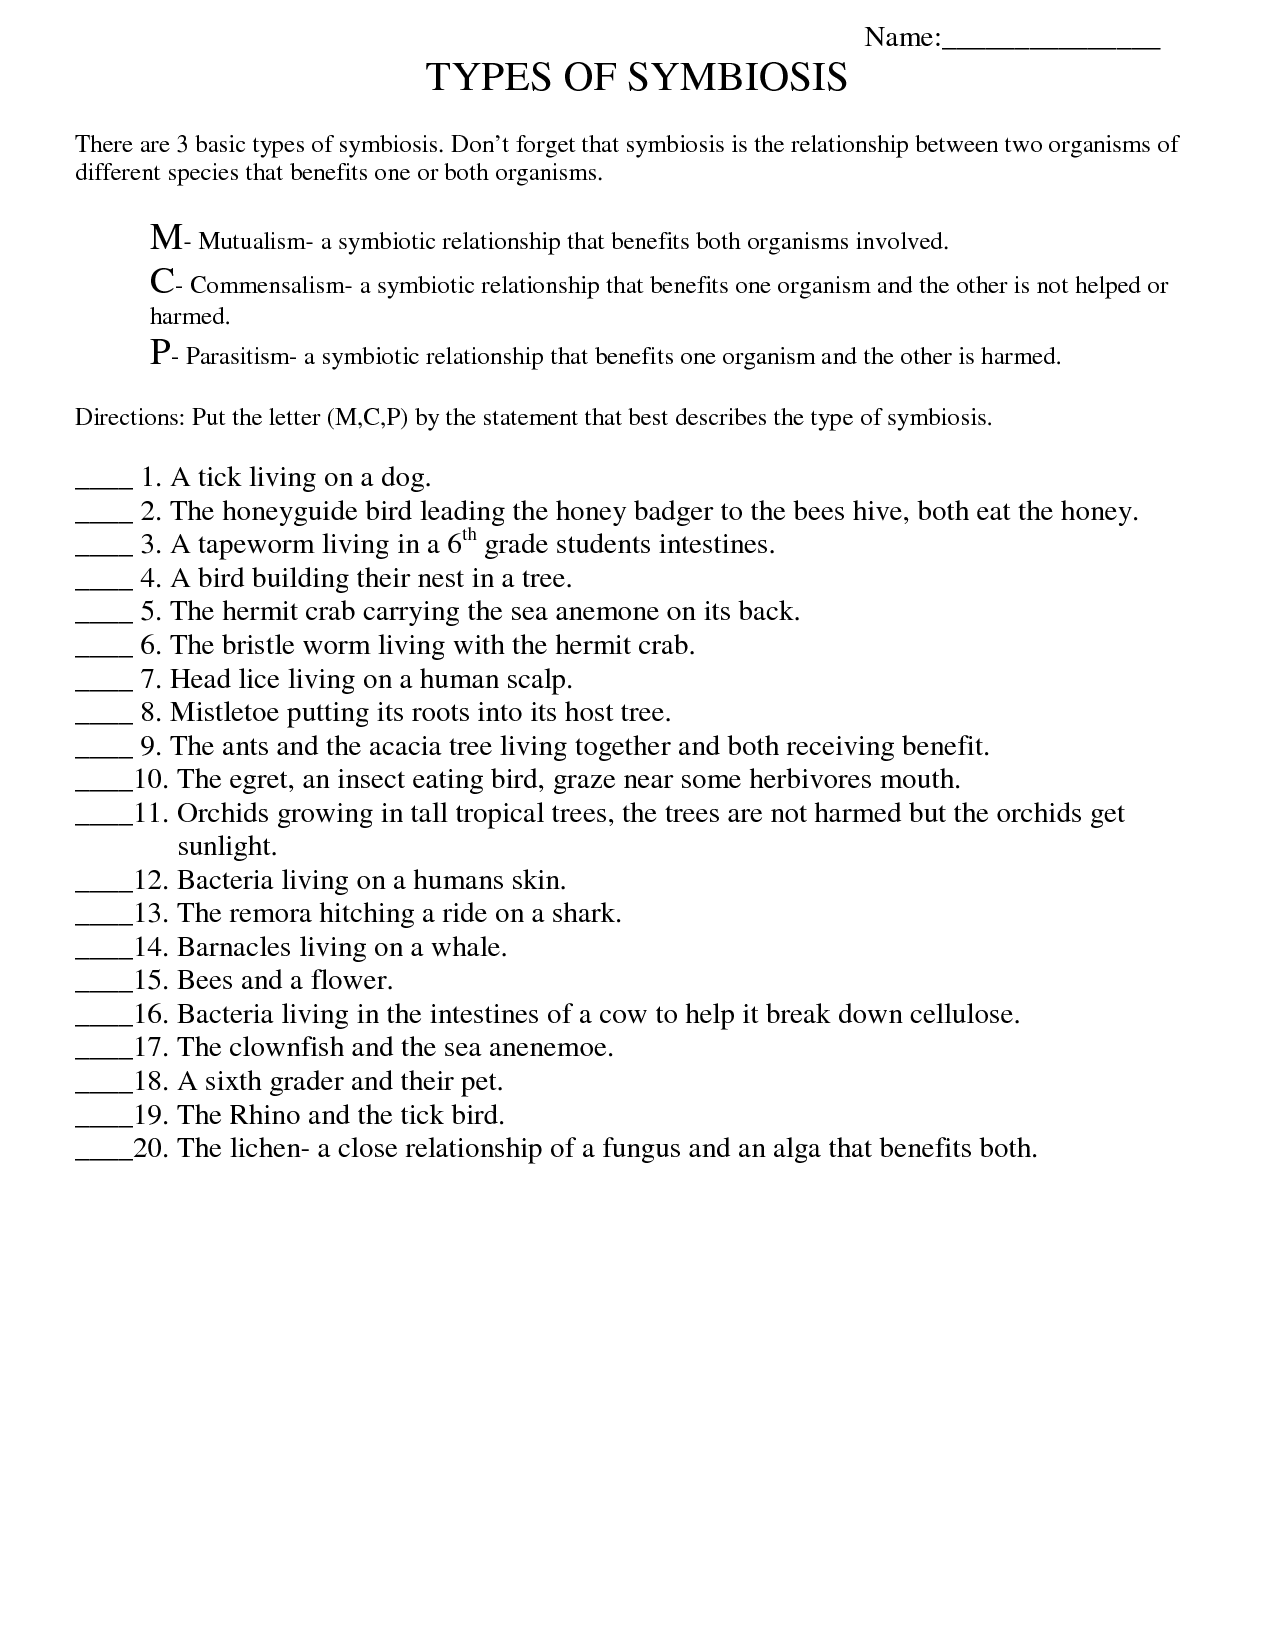 Symbiosis Worksheet Free Printable Worksheets On High School Bio Fungi Healthyou